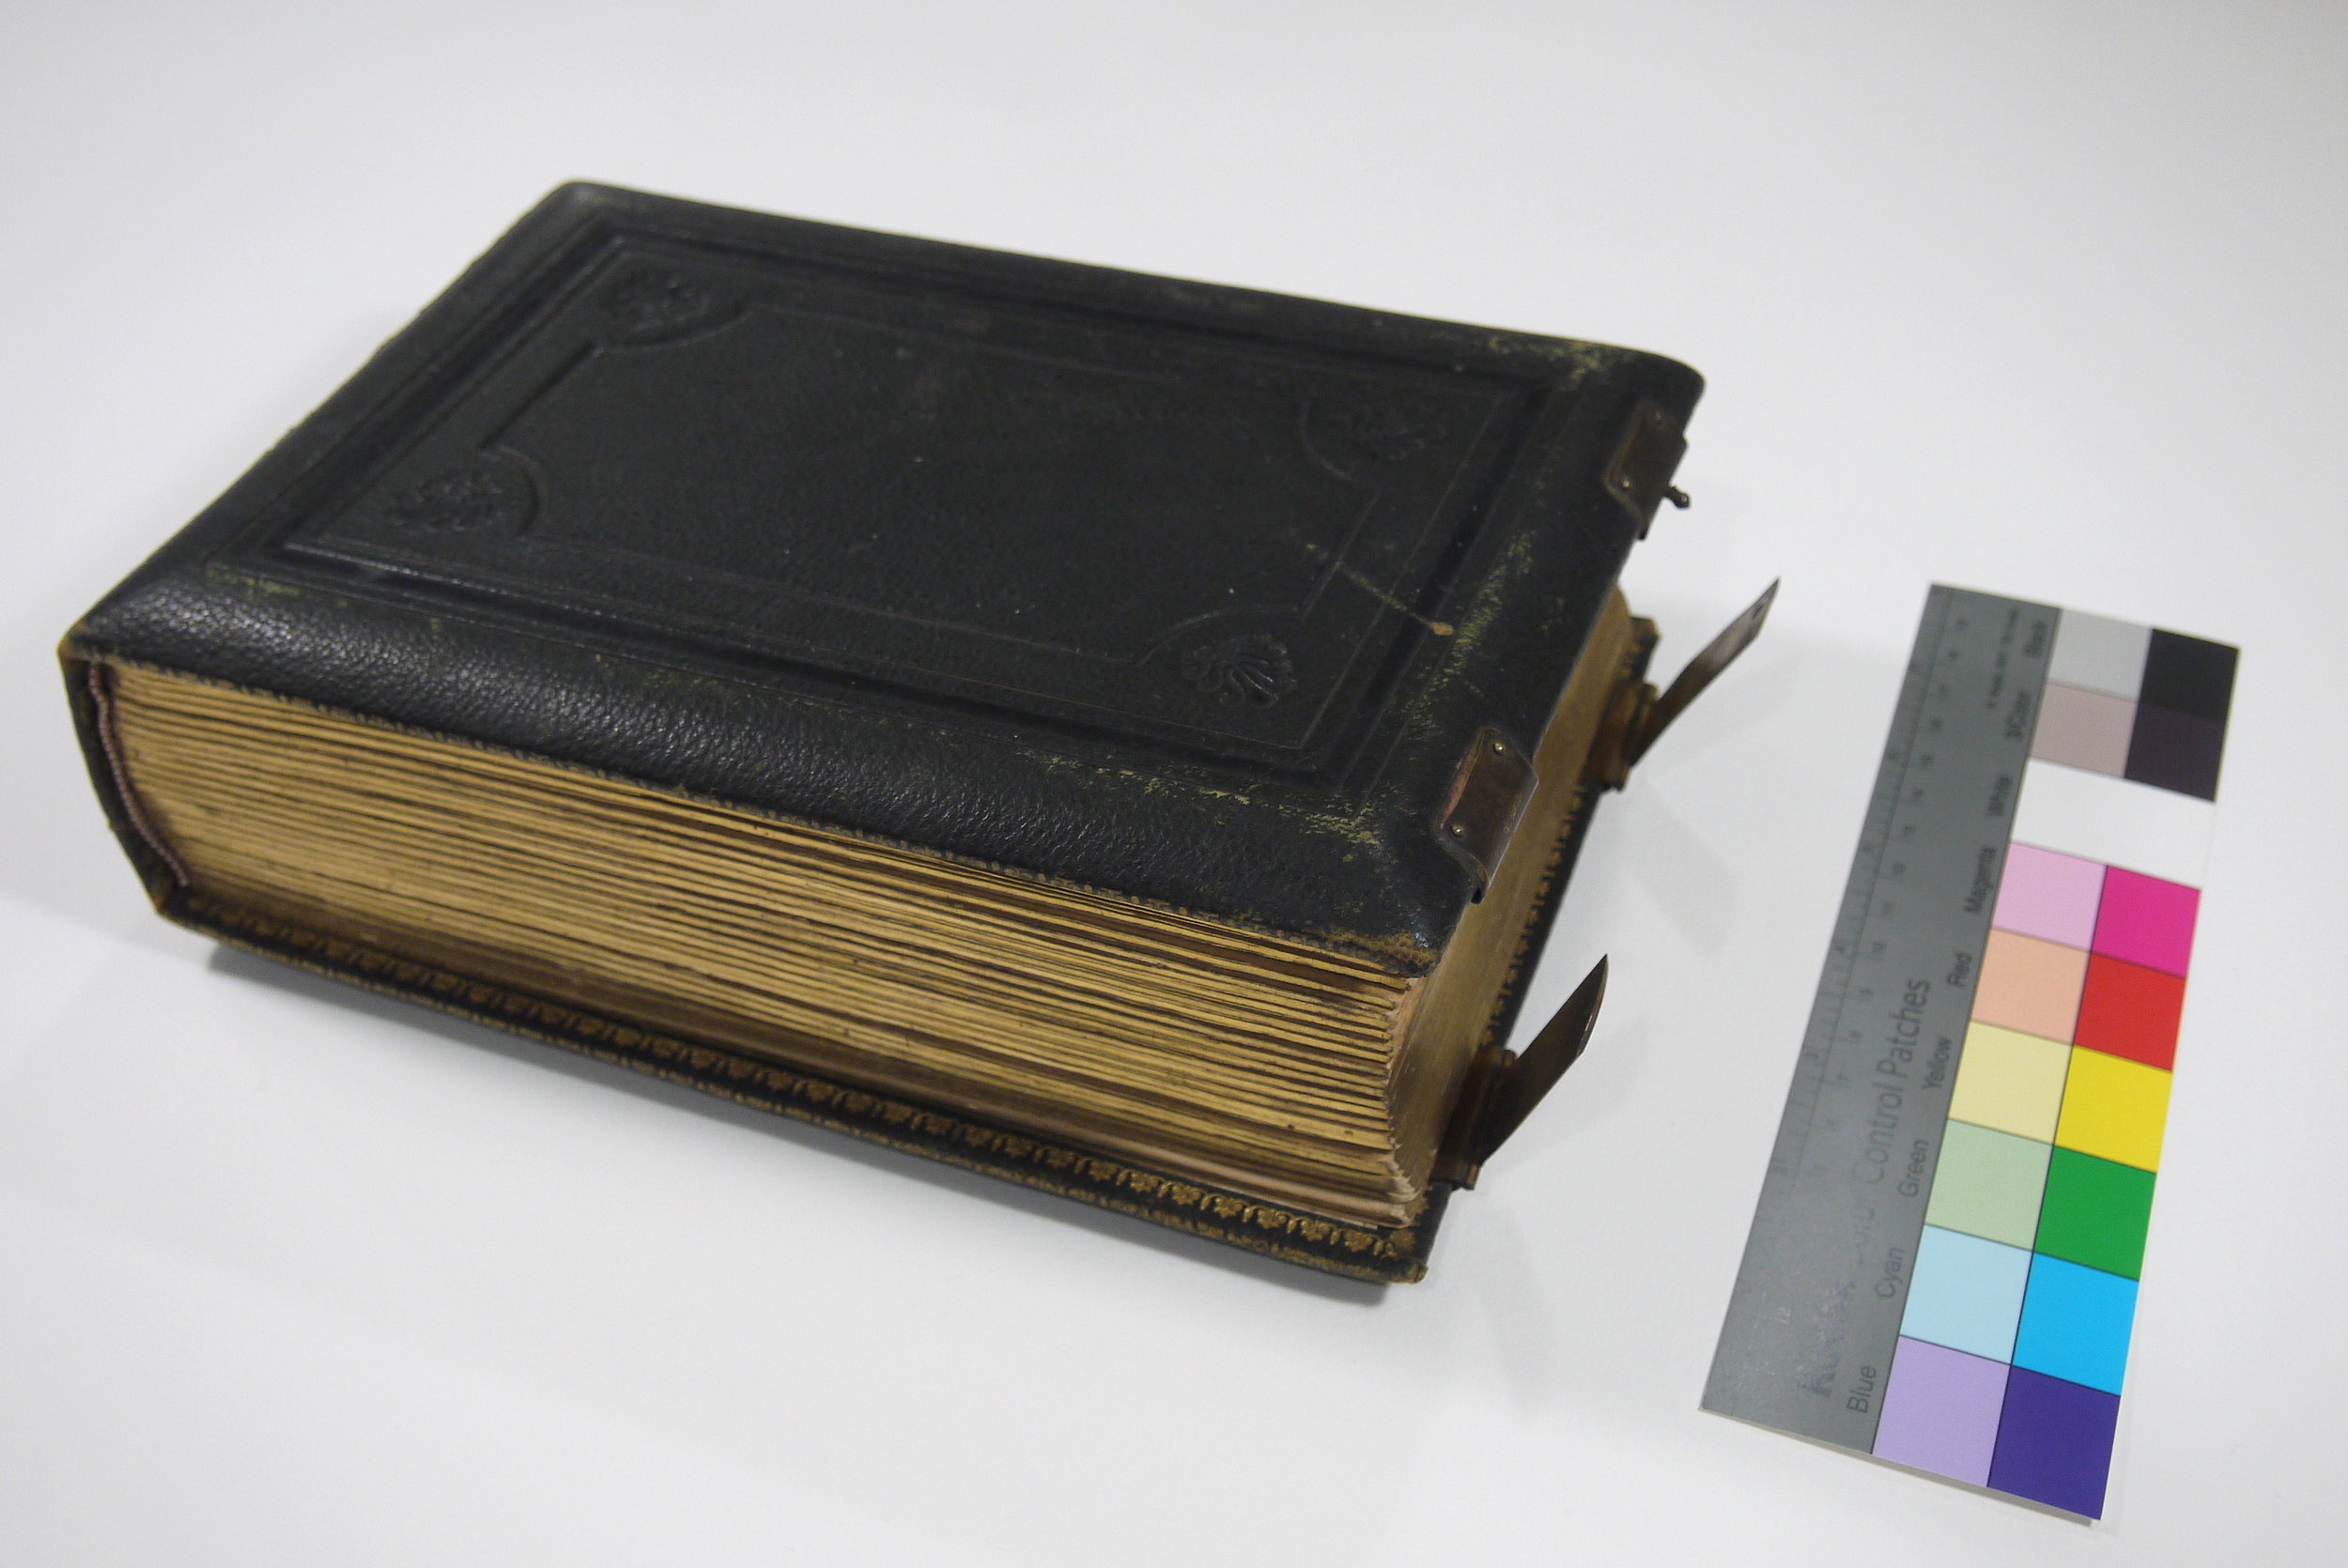 The Bishop Crinnon carte de visite album before conservation treatment.